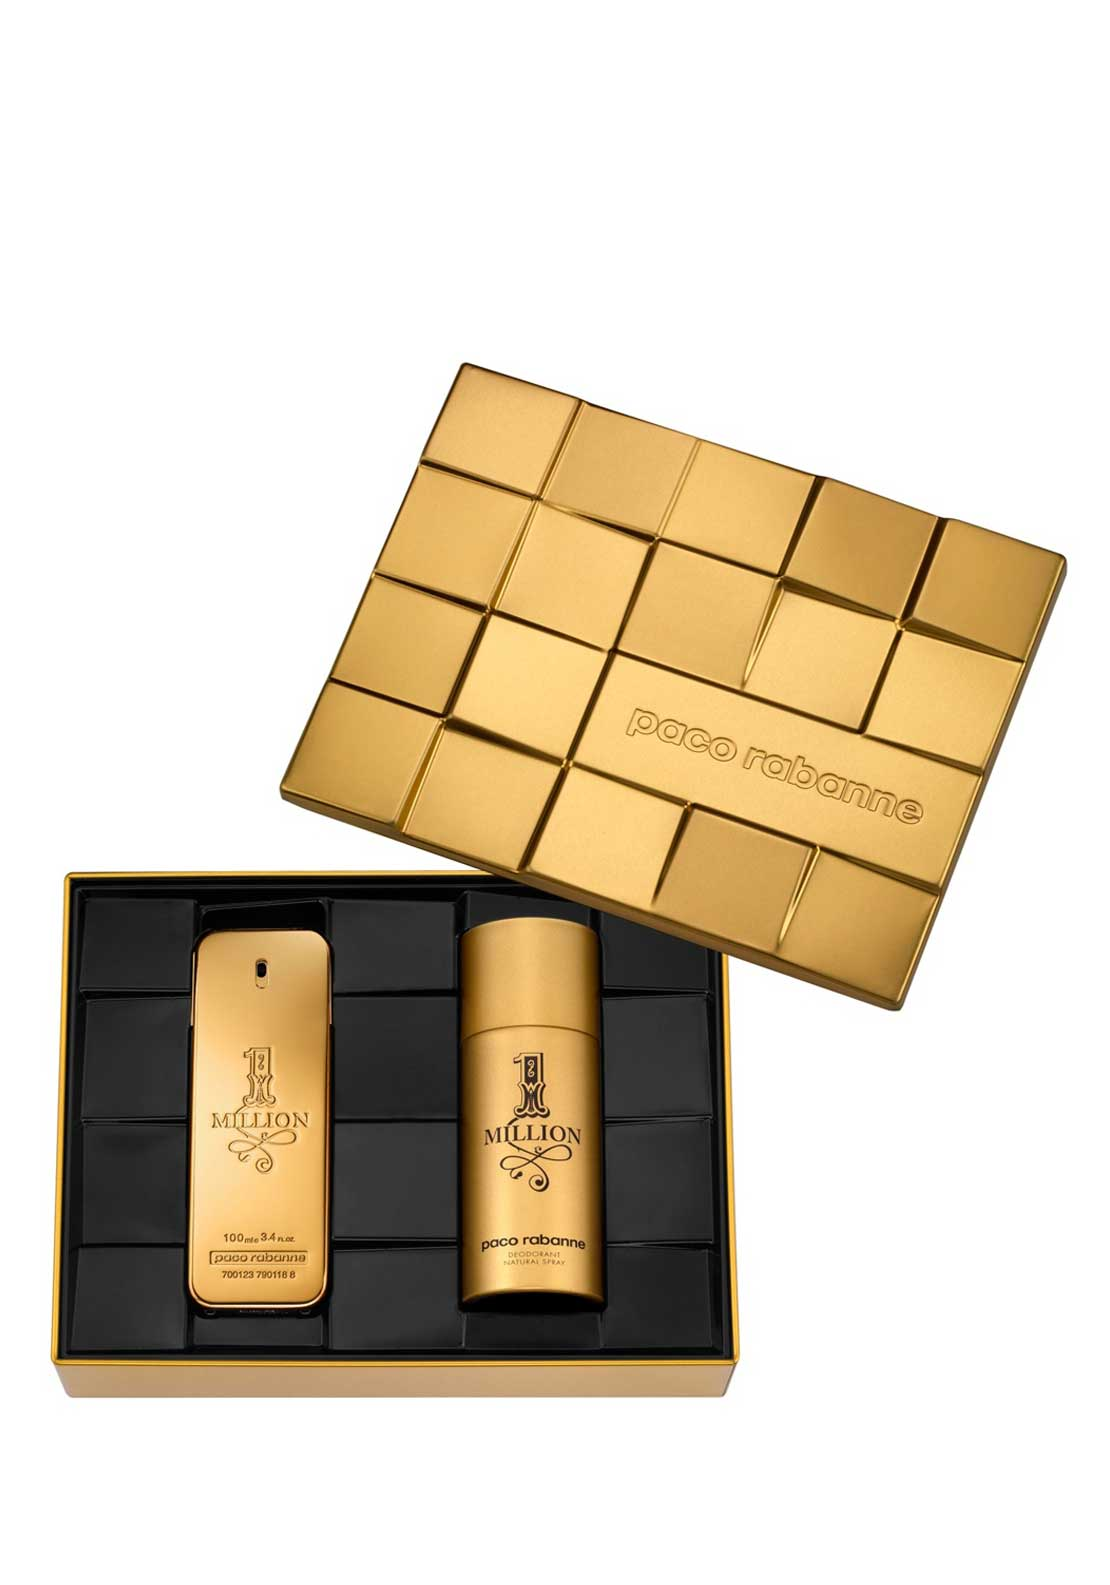 Paco Rabanne 1 Million Gift Set for him, 100ml